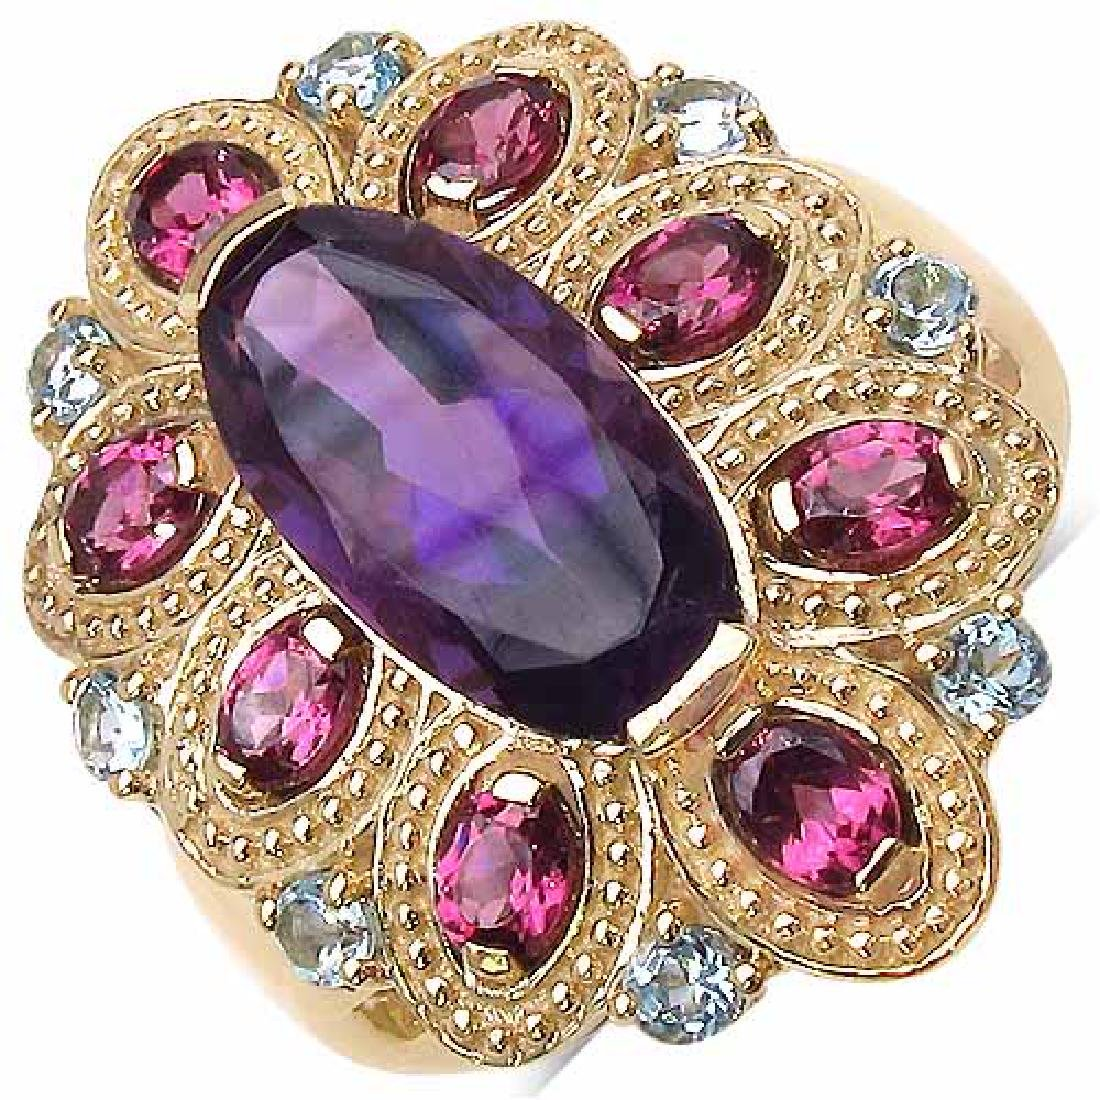 14K Gold Plated 4.50 Carat Amethyst Ring with 2.40 ct.